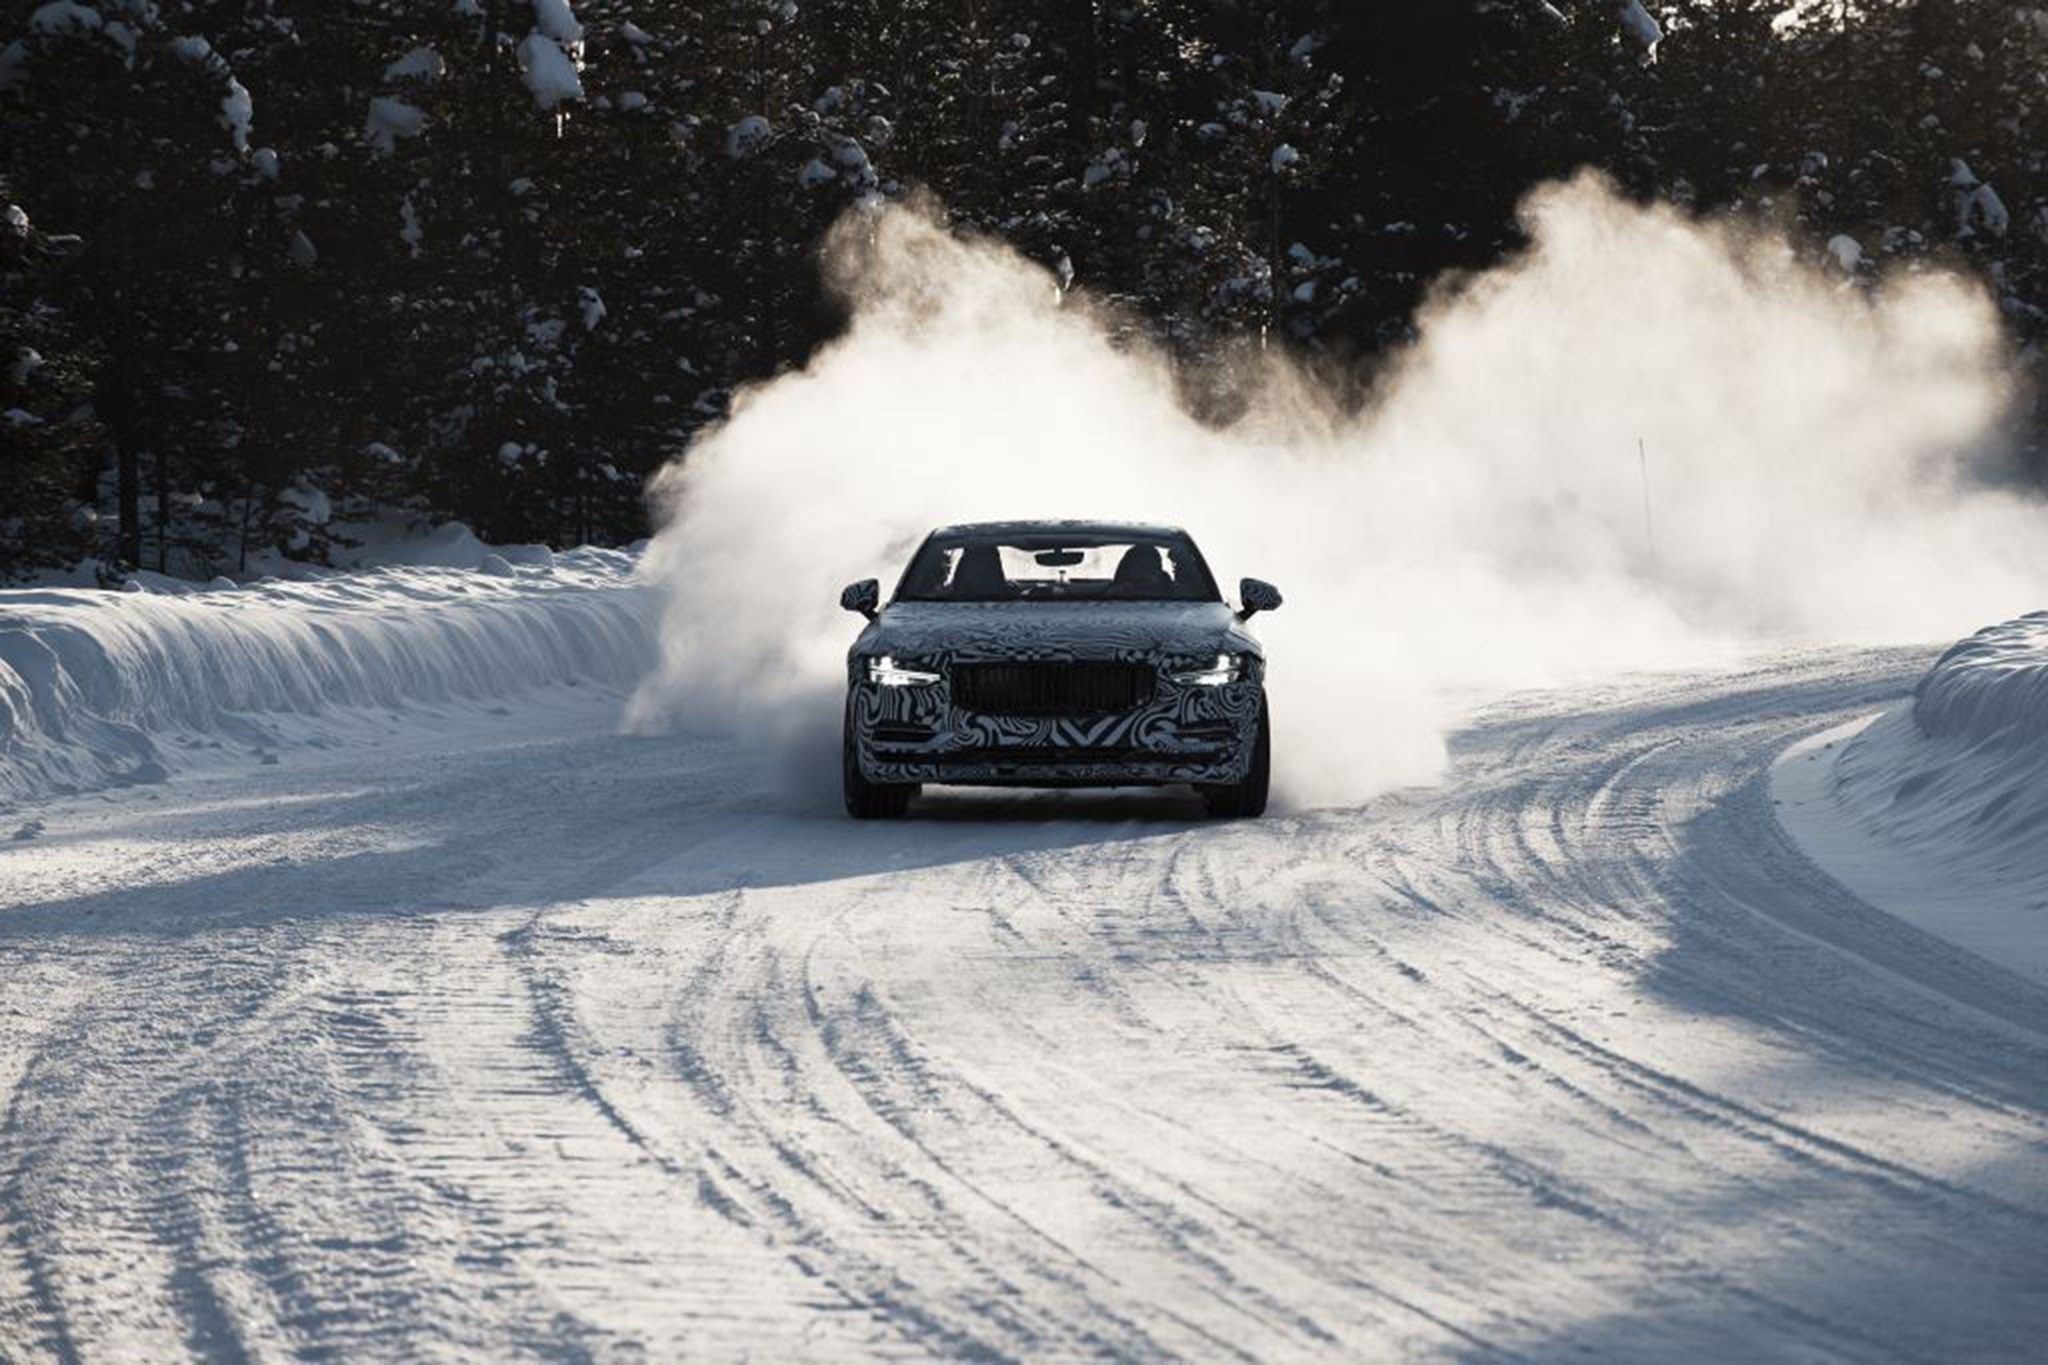 Polestar 1 goes drifting during cold-weather testing